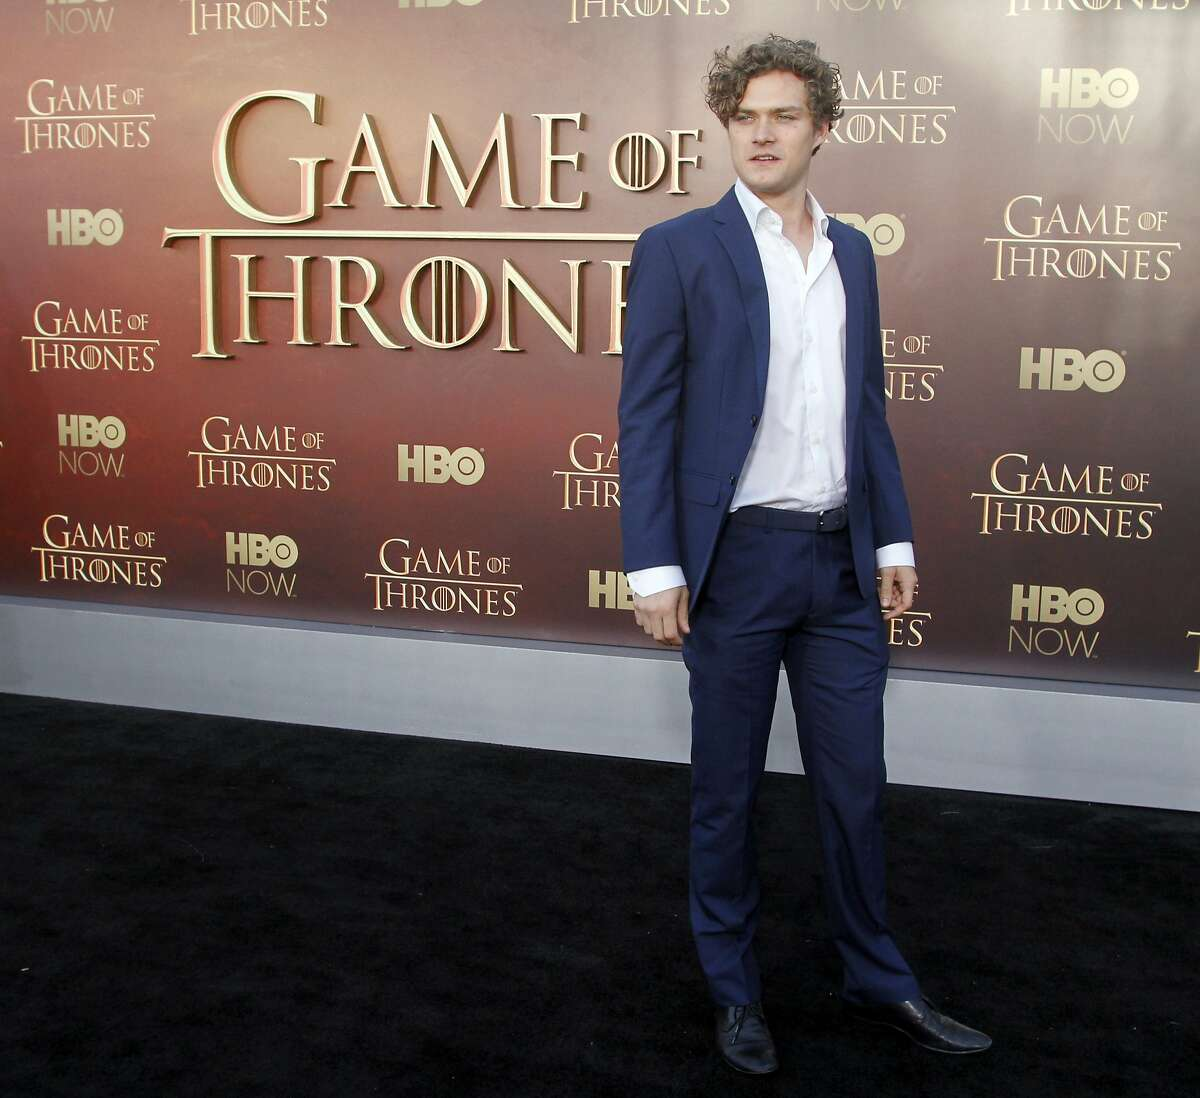 """Finn Jones arrives at the Season 5 premier of """"Game of Thrones"""" at the War Memorial Opera House, Monday, March 23, 2015, in San Francisco. (Photo/George Nikitin, Invision/AP)"""